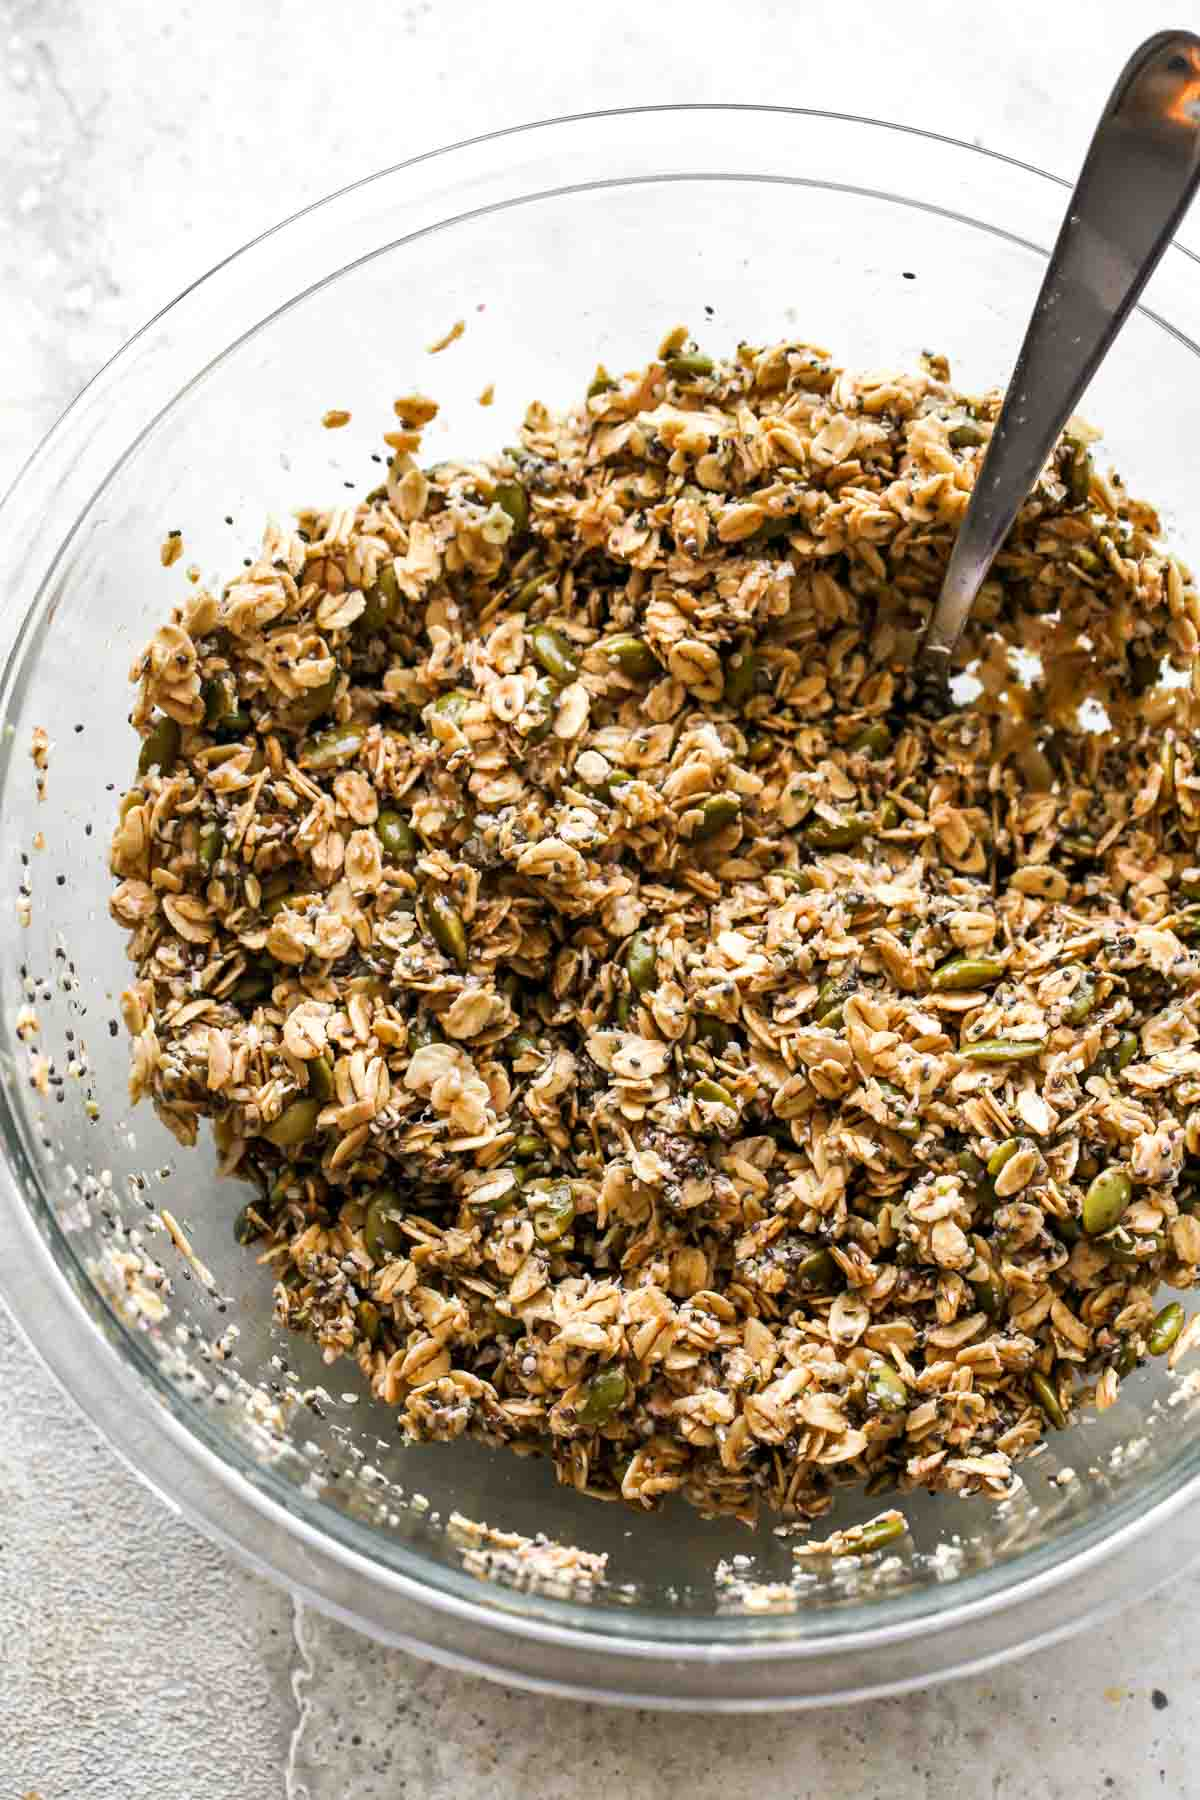 Oats, seeds, coconut, oil, and honey being mixed together with a spoon